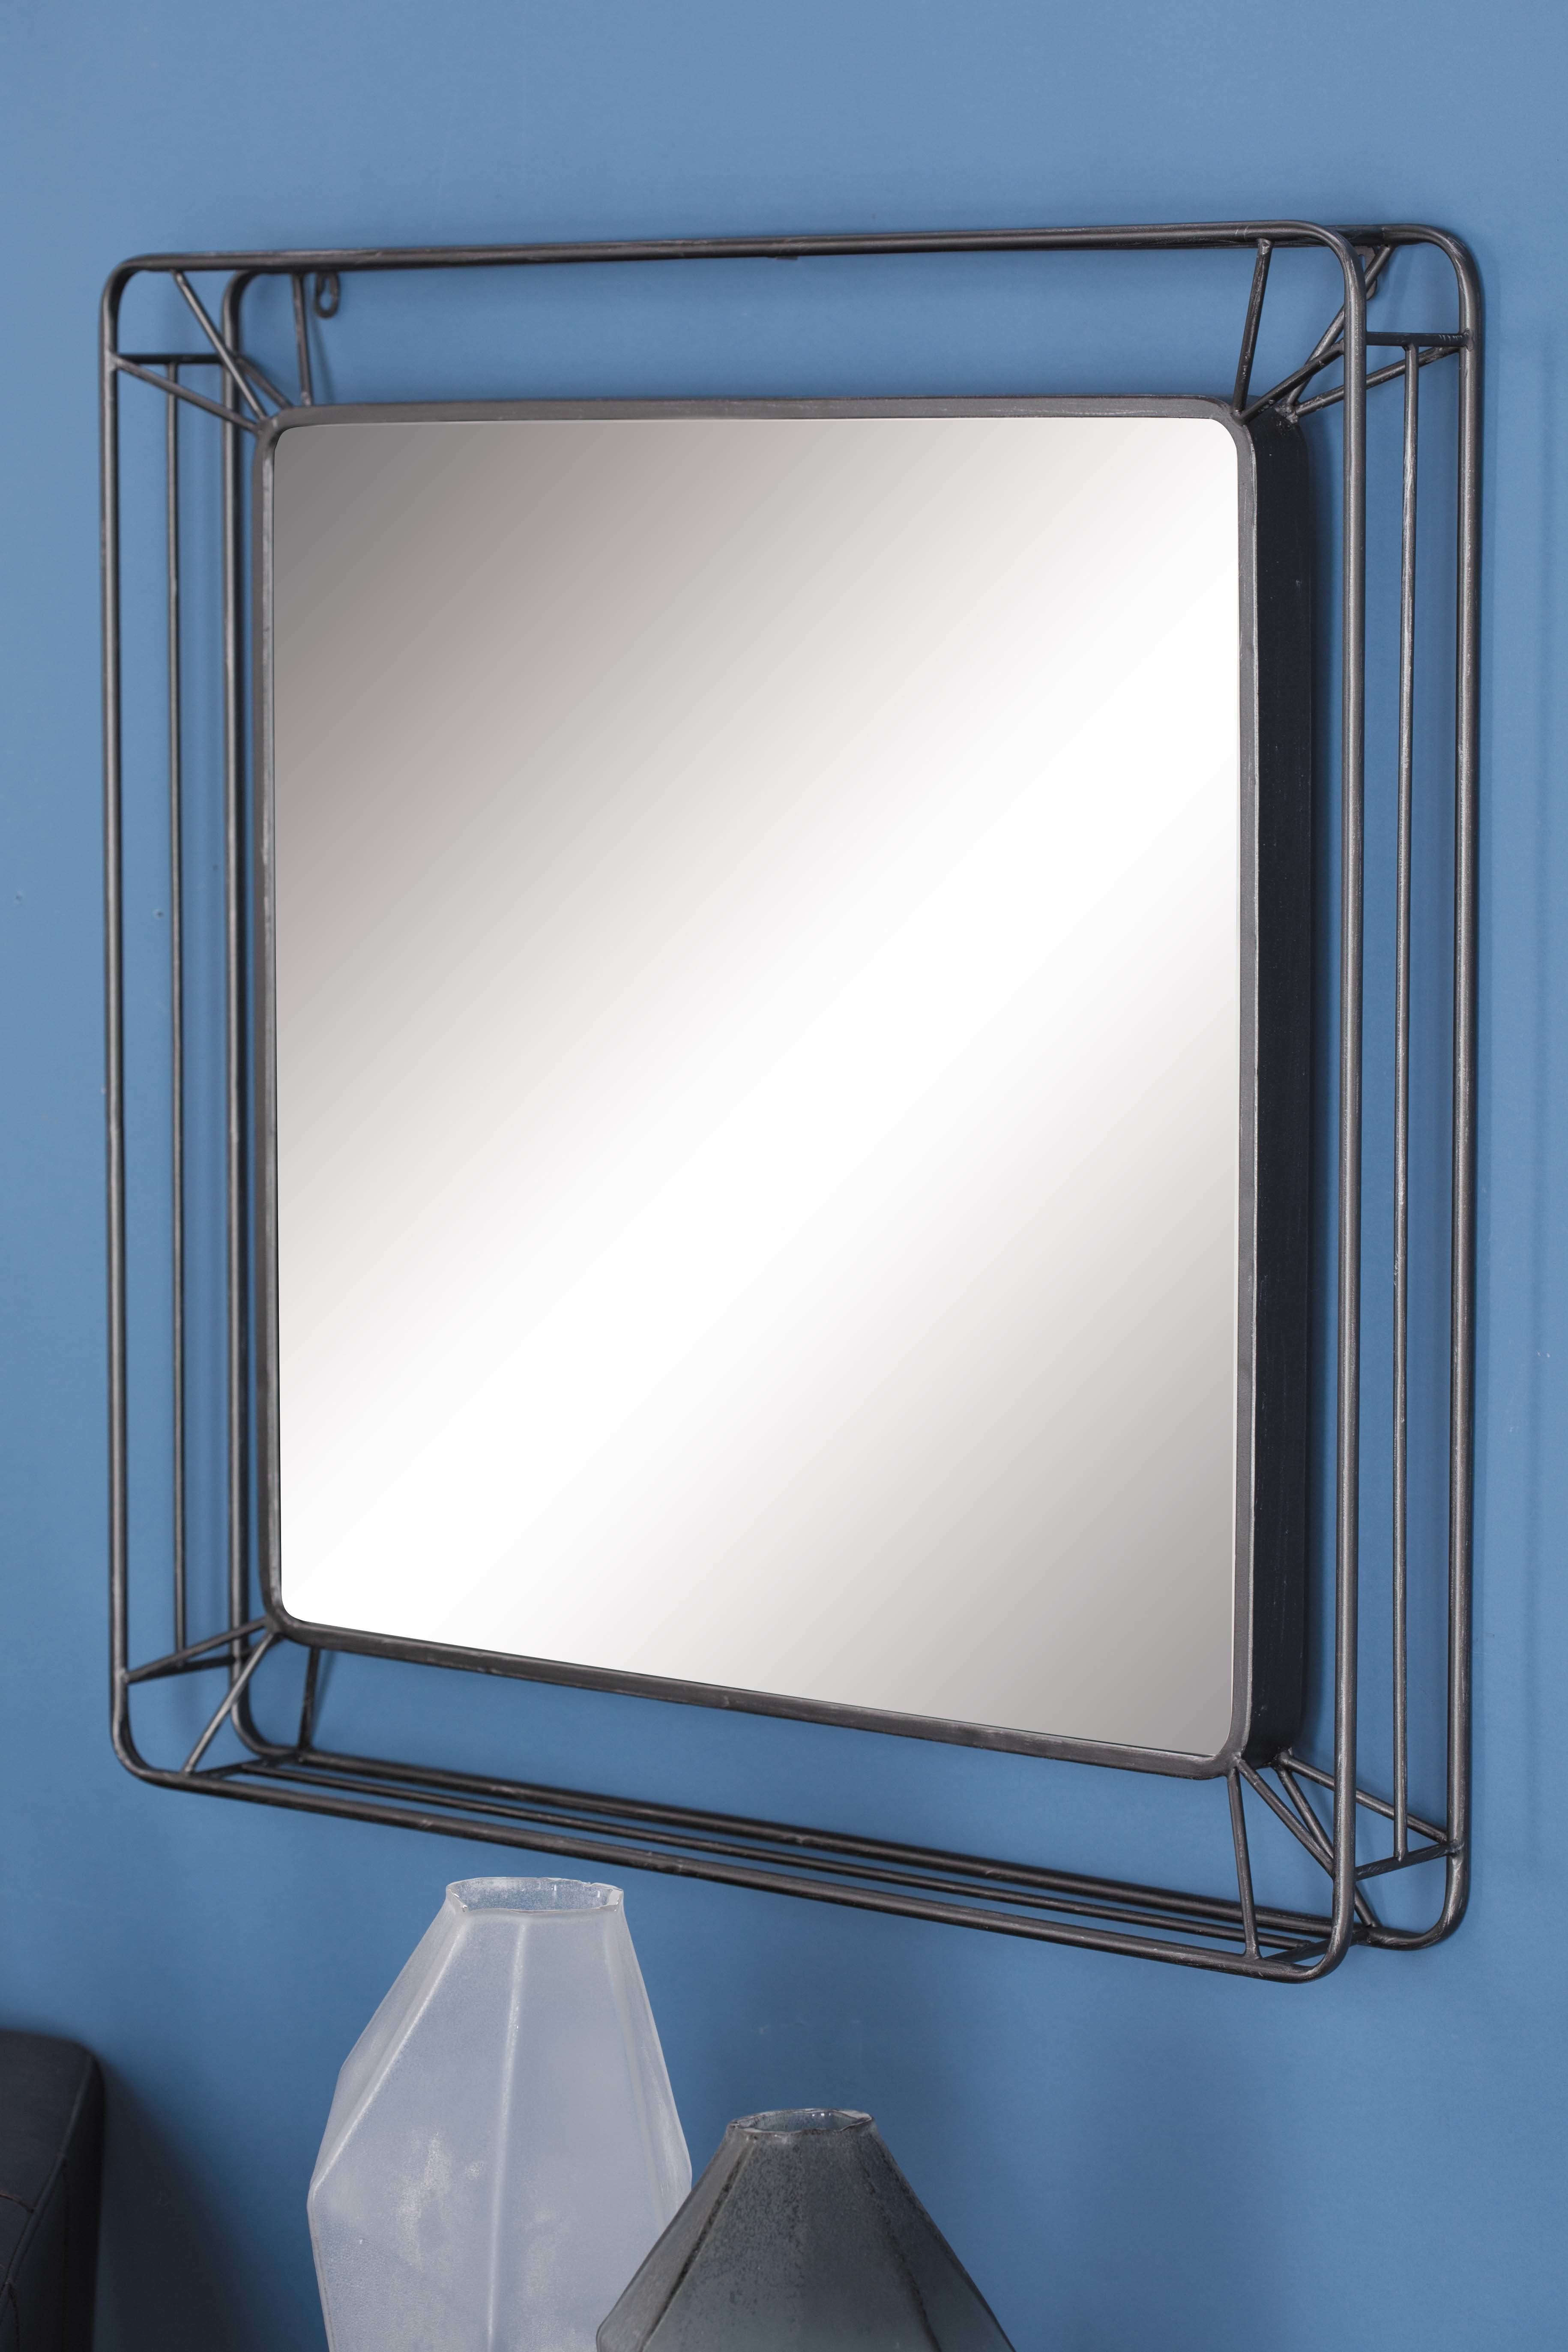 Visconti Metal Wall Mirror intended for Koeller Industrial Metal Wall Mirrors (Image 27 of 30)